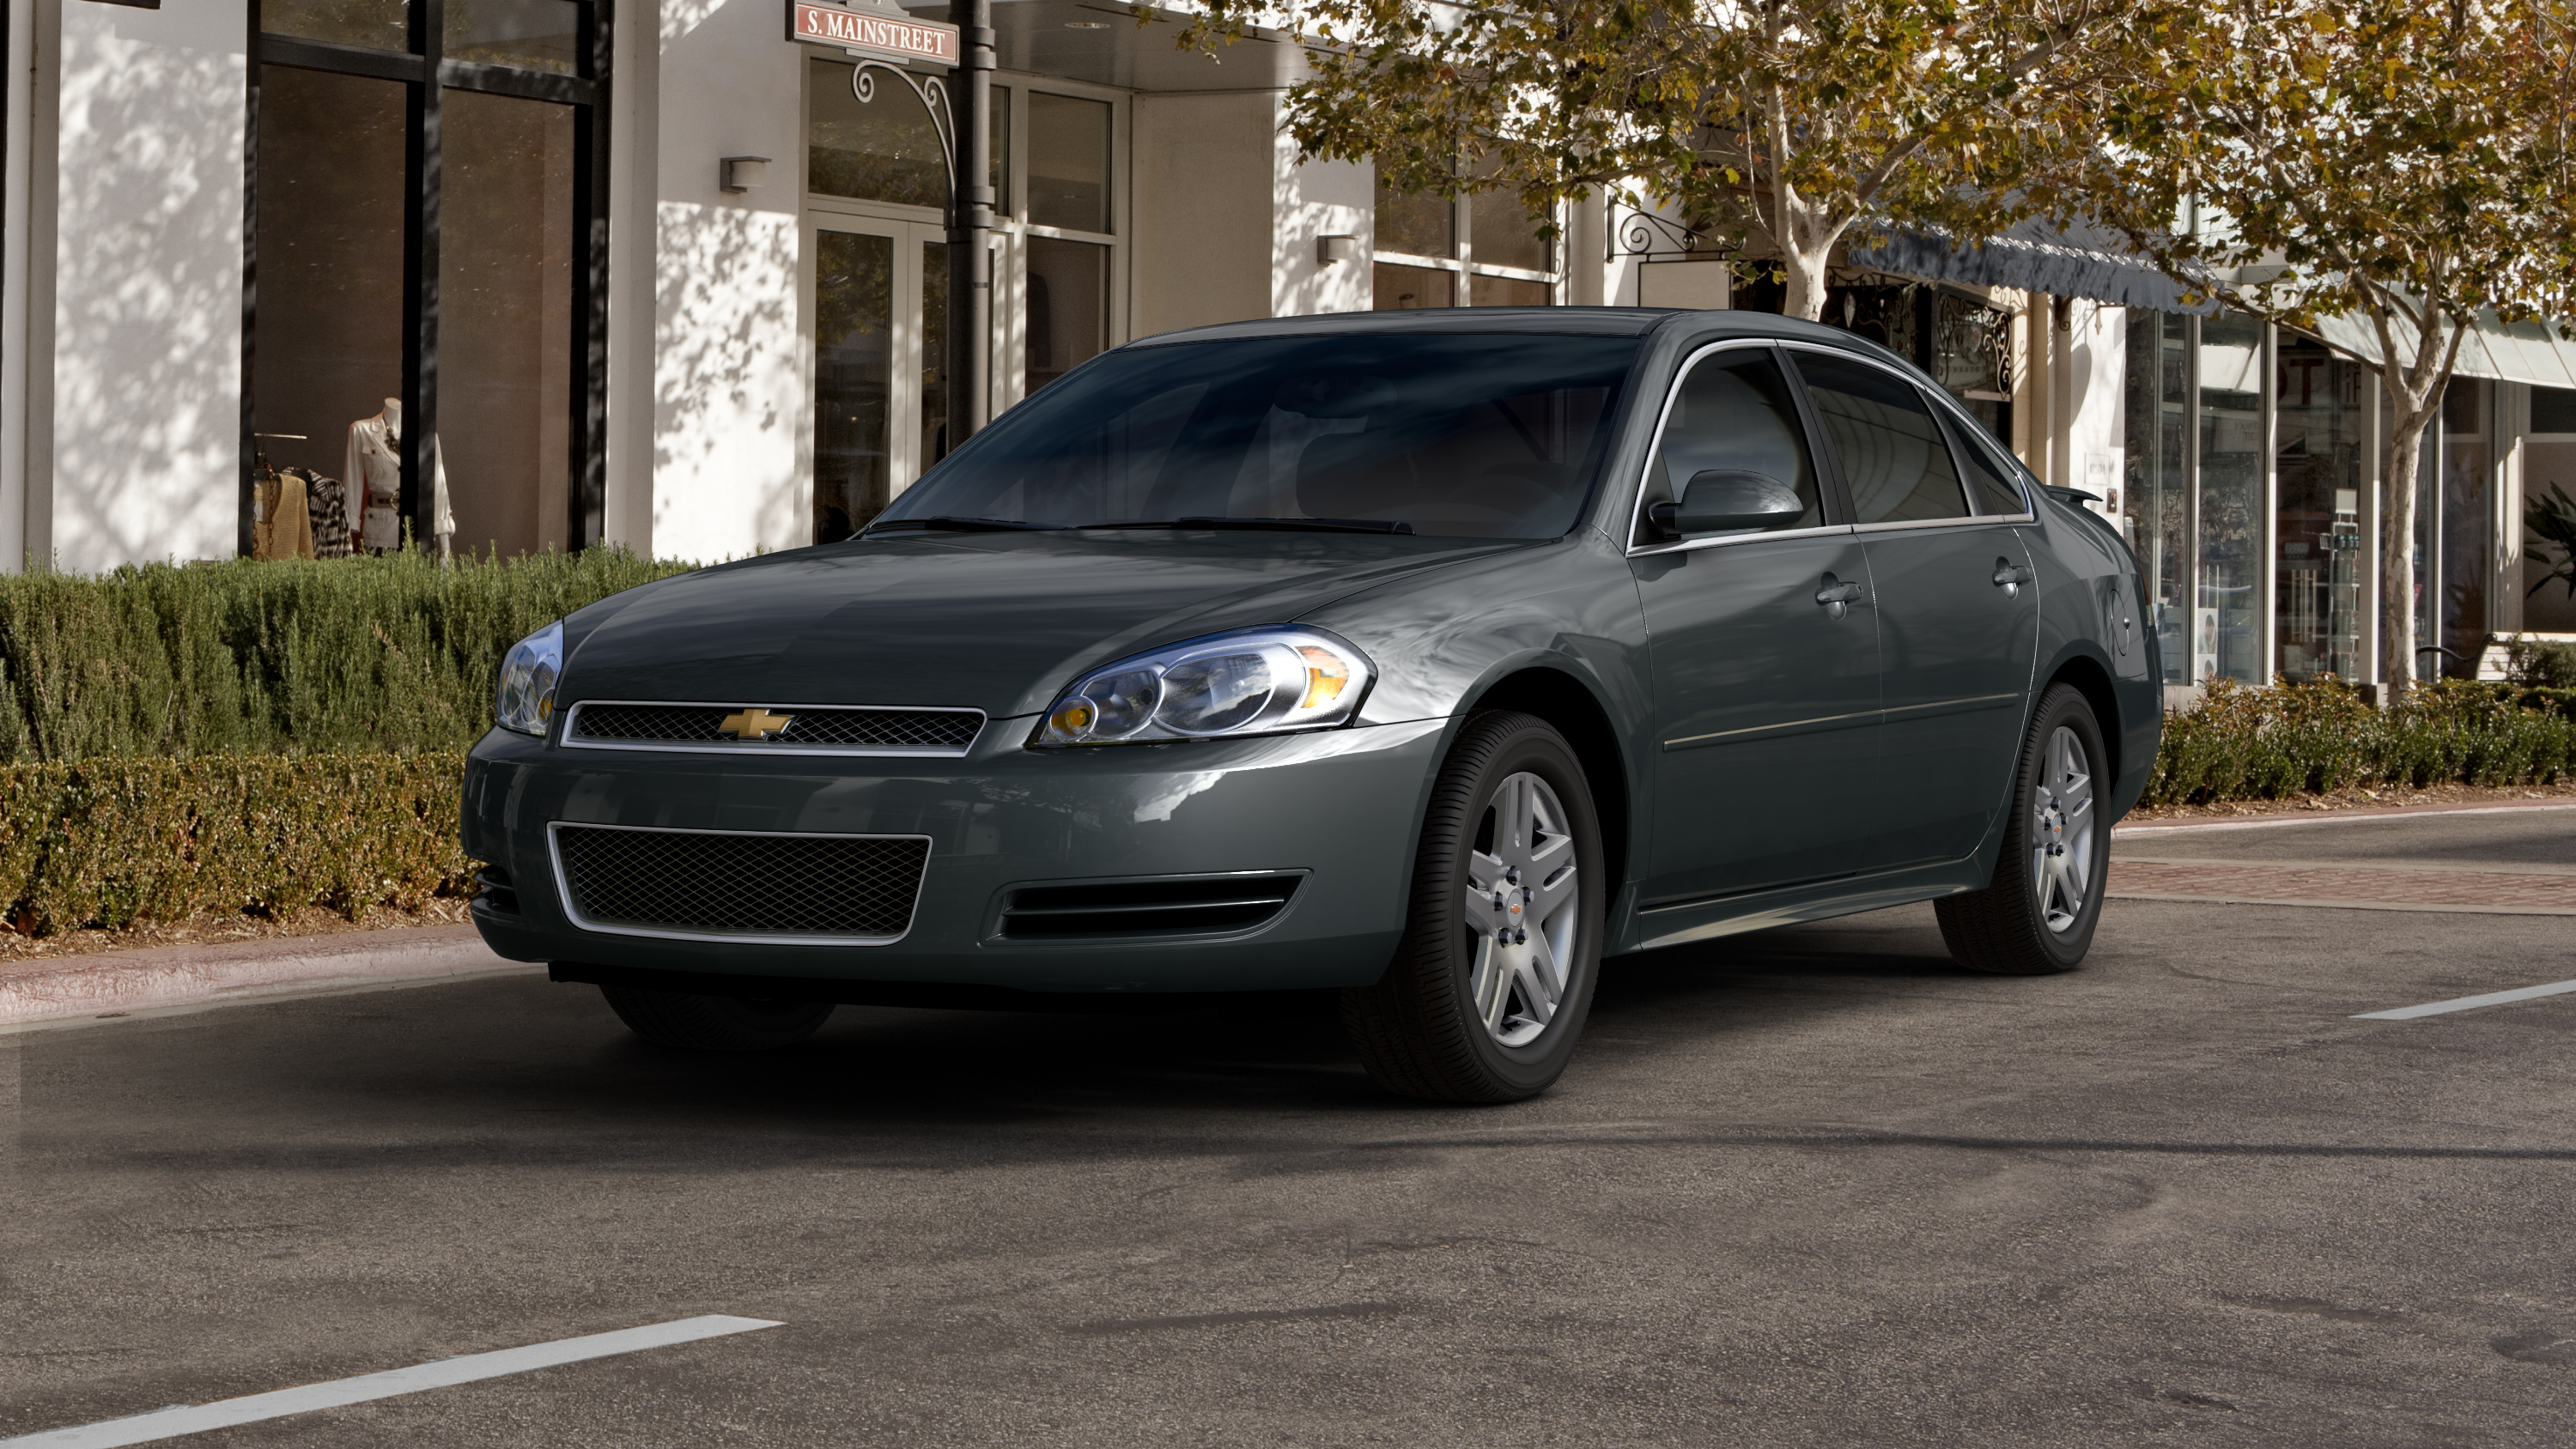 houston trim auto model color vin dr gray make year stock sedan sales inventory interior automatic trans chevrolet impala img